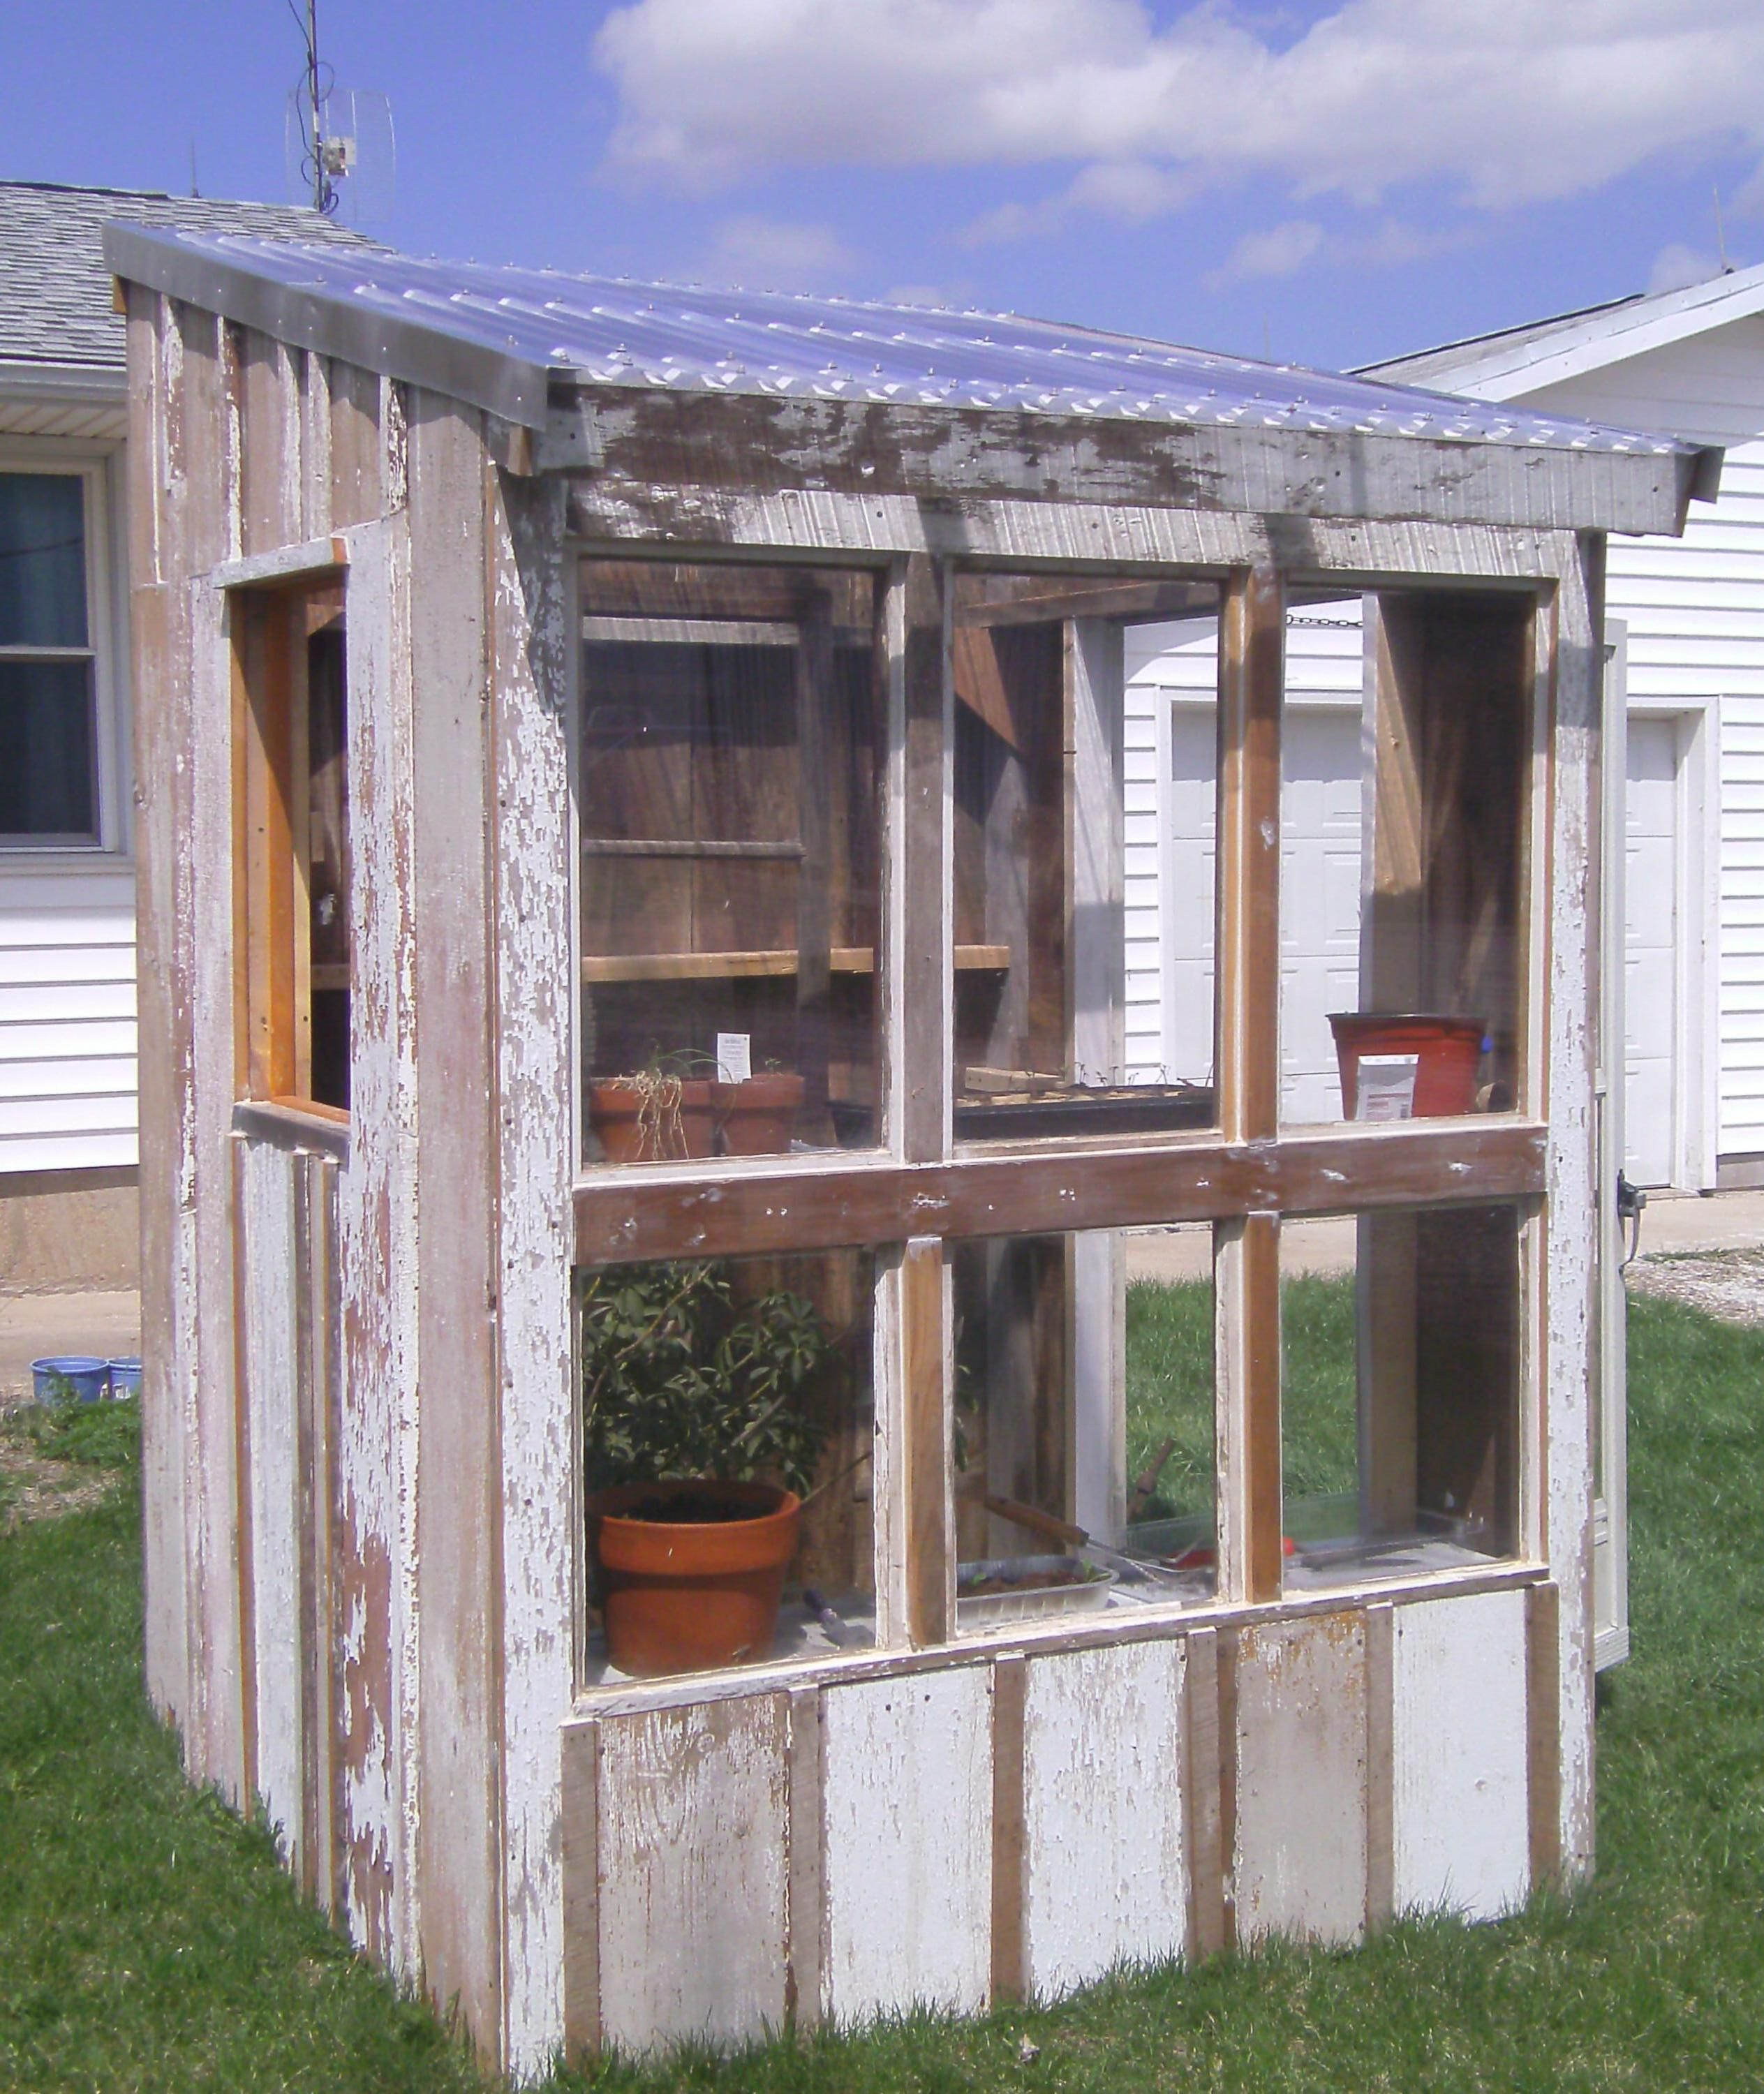 Homemade Greenhouse Made Using Mostly Recycled Building Materials